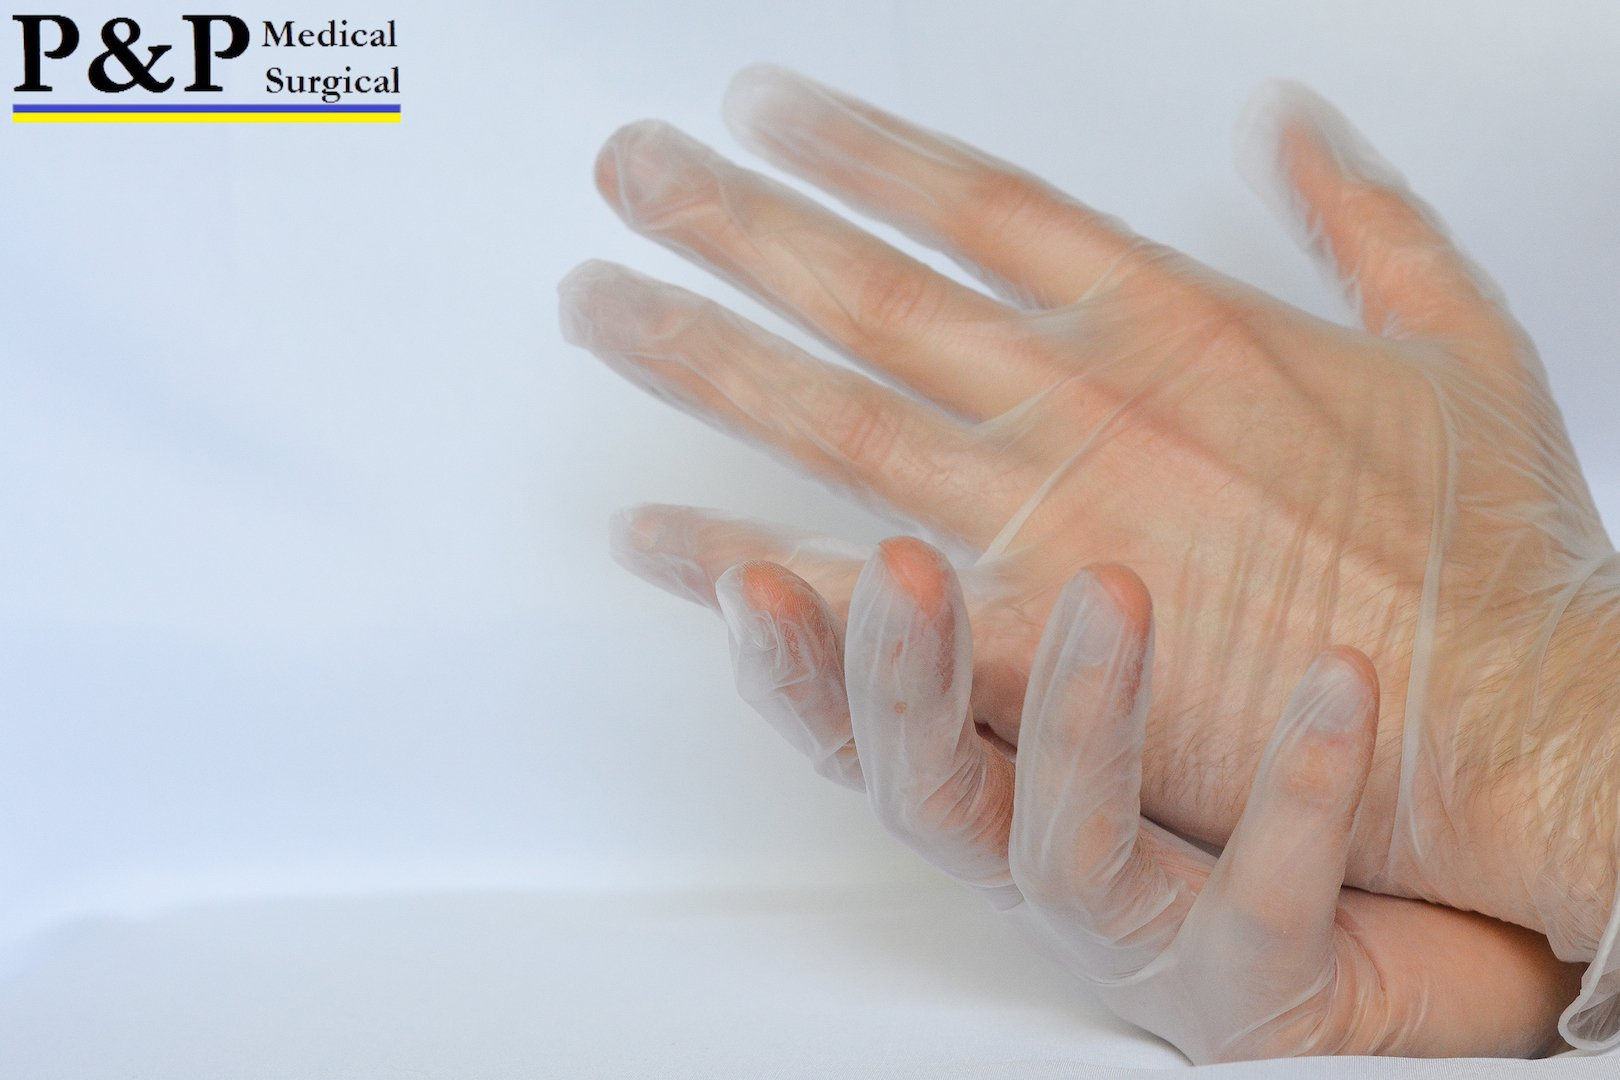 Vinyl Gloves Disposable Medical Exam Powder Latex Free (1 Case= 1000 gloves) X-Large by P&P Medical Surgical (Image #2)